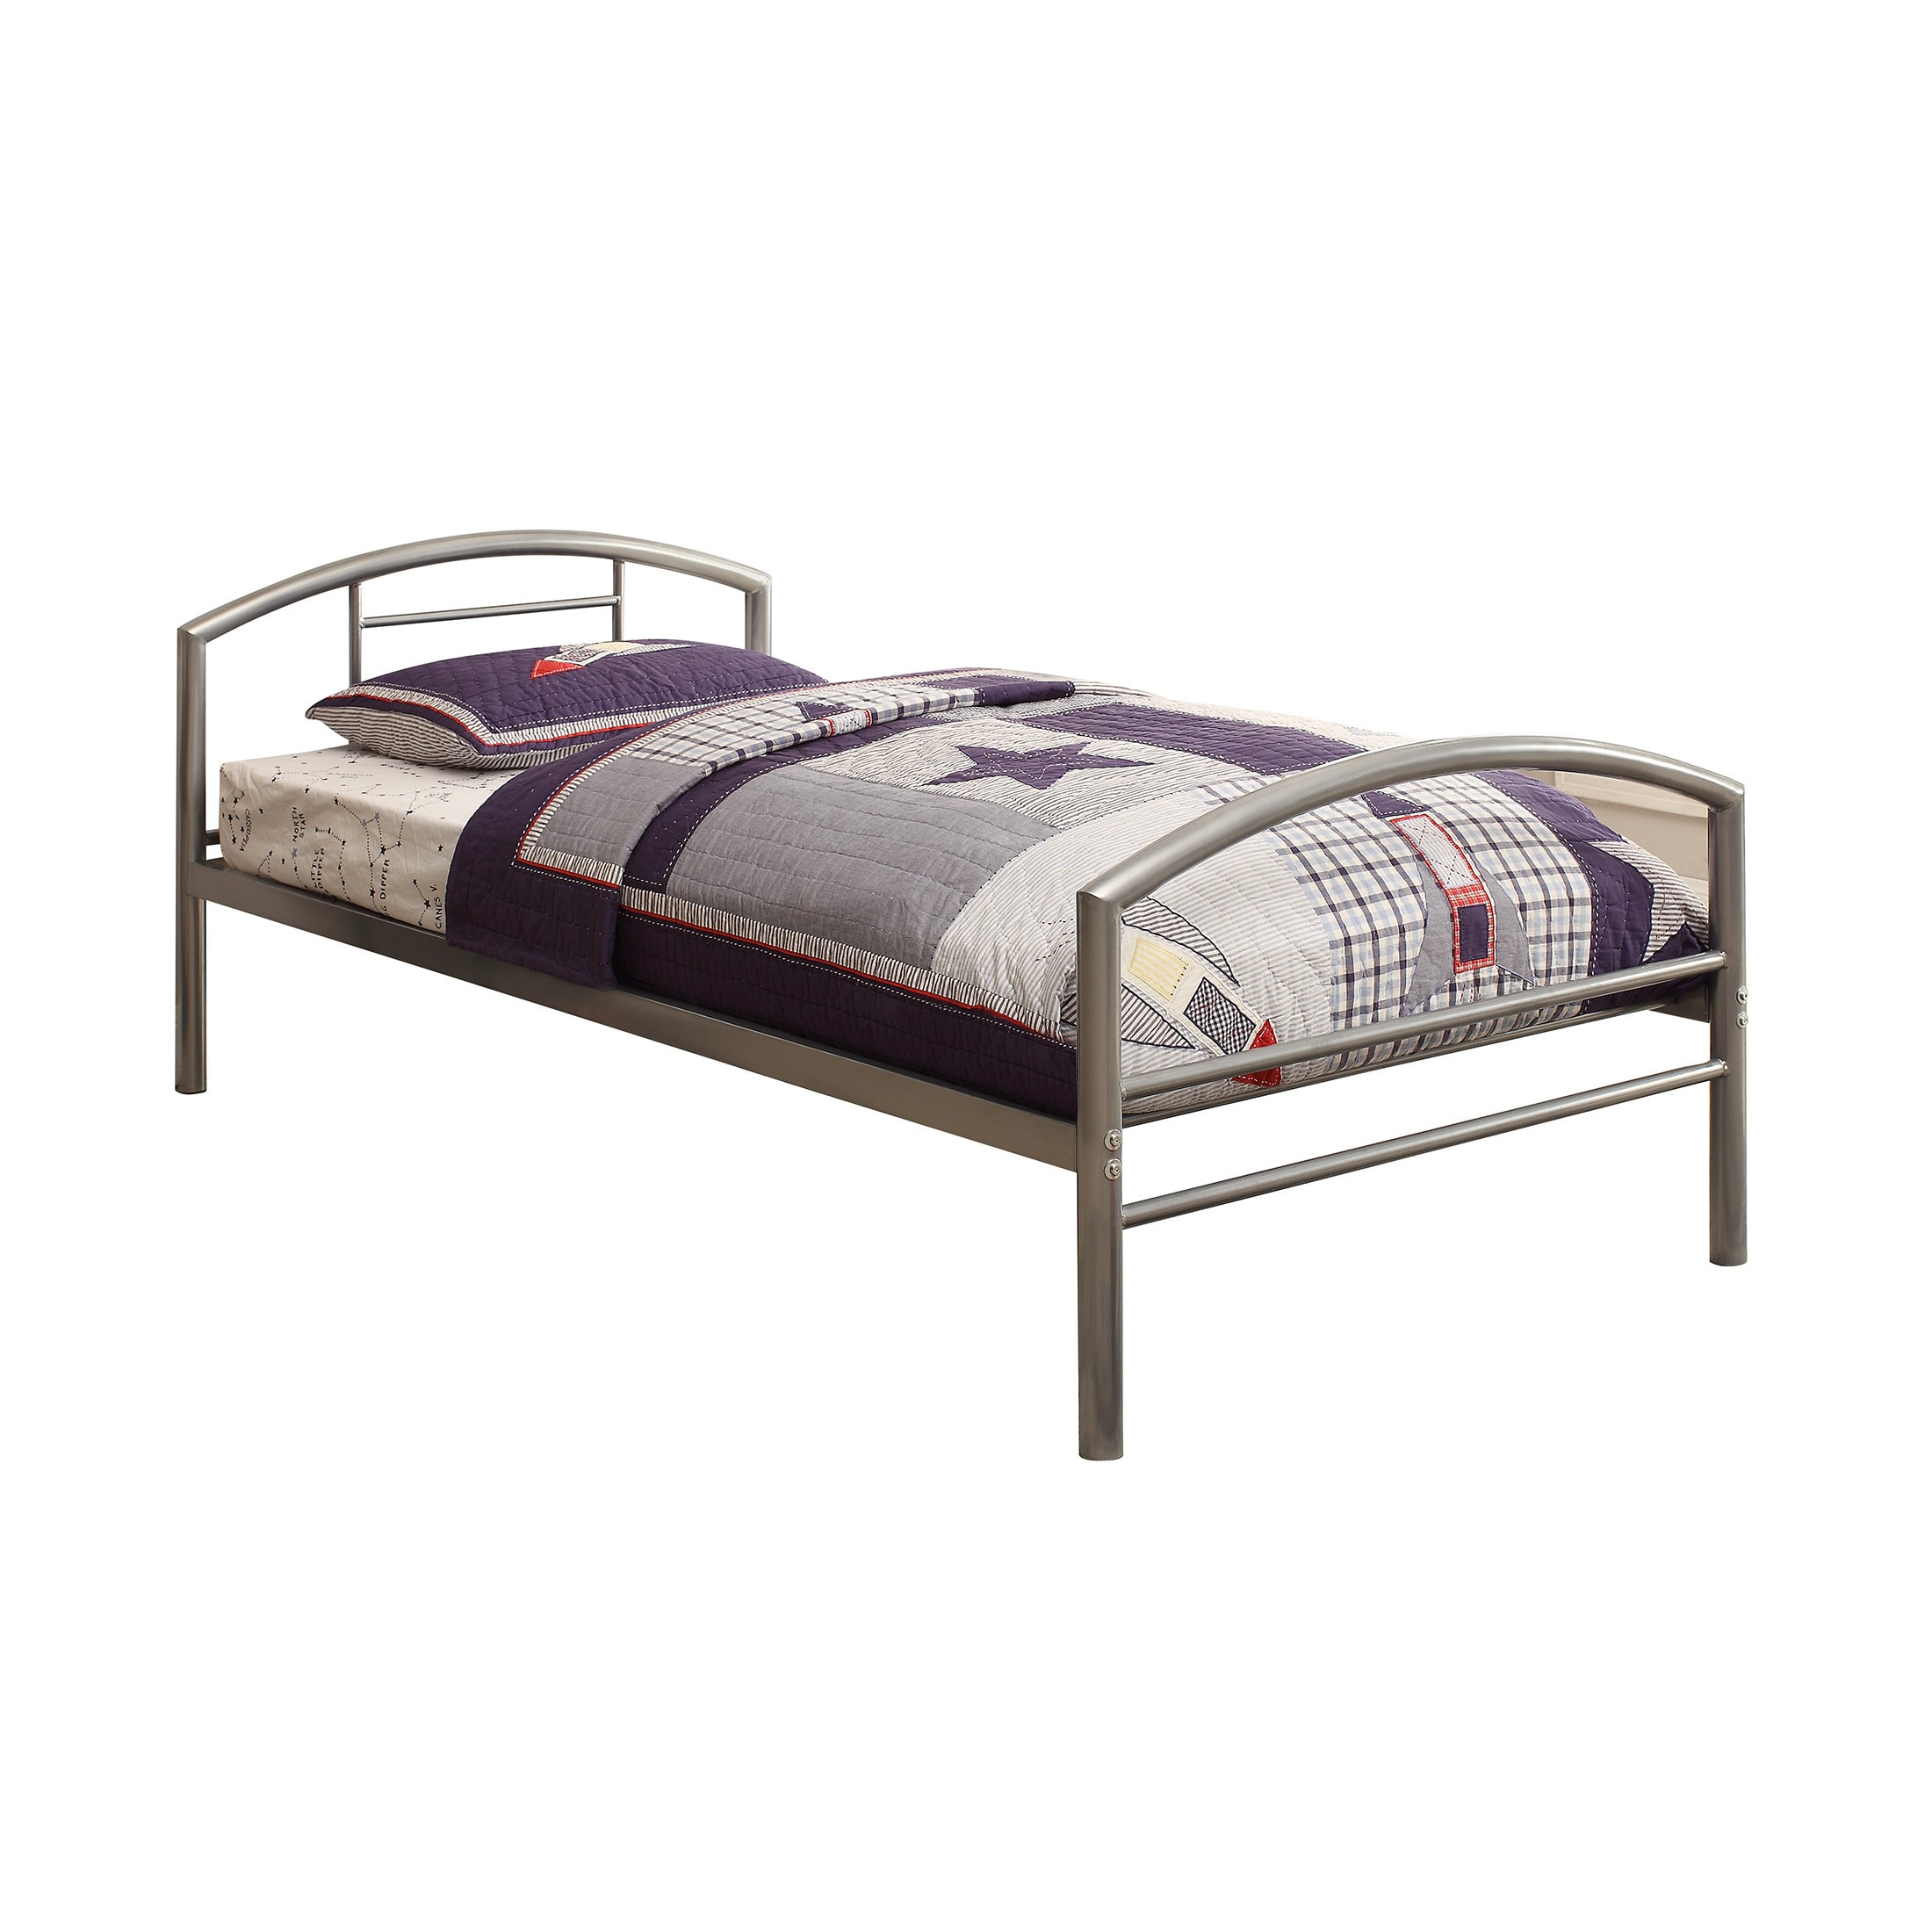 Coaster Furniture Baines Silver Twin Bed (Twin BED)